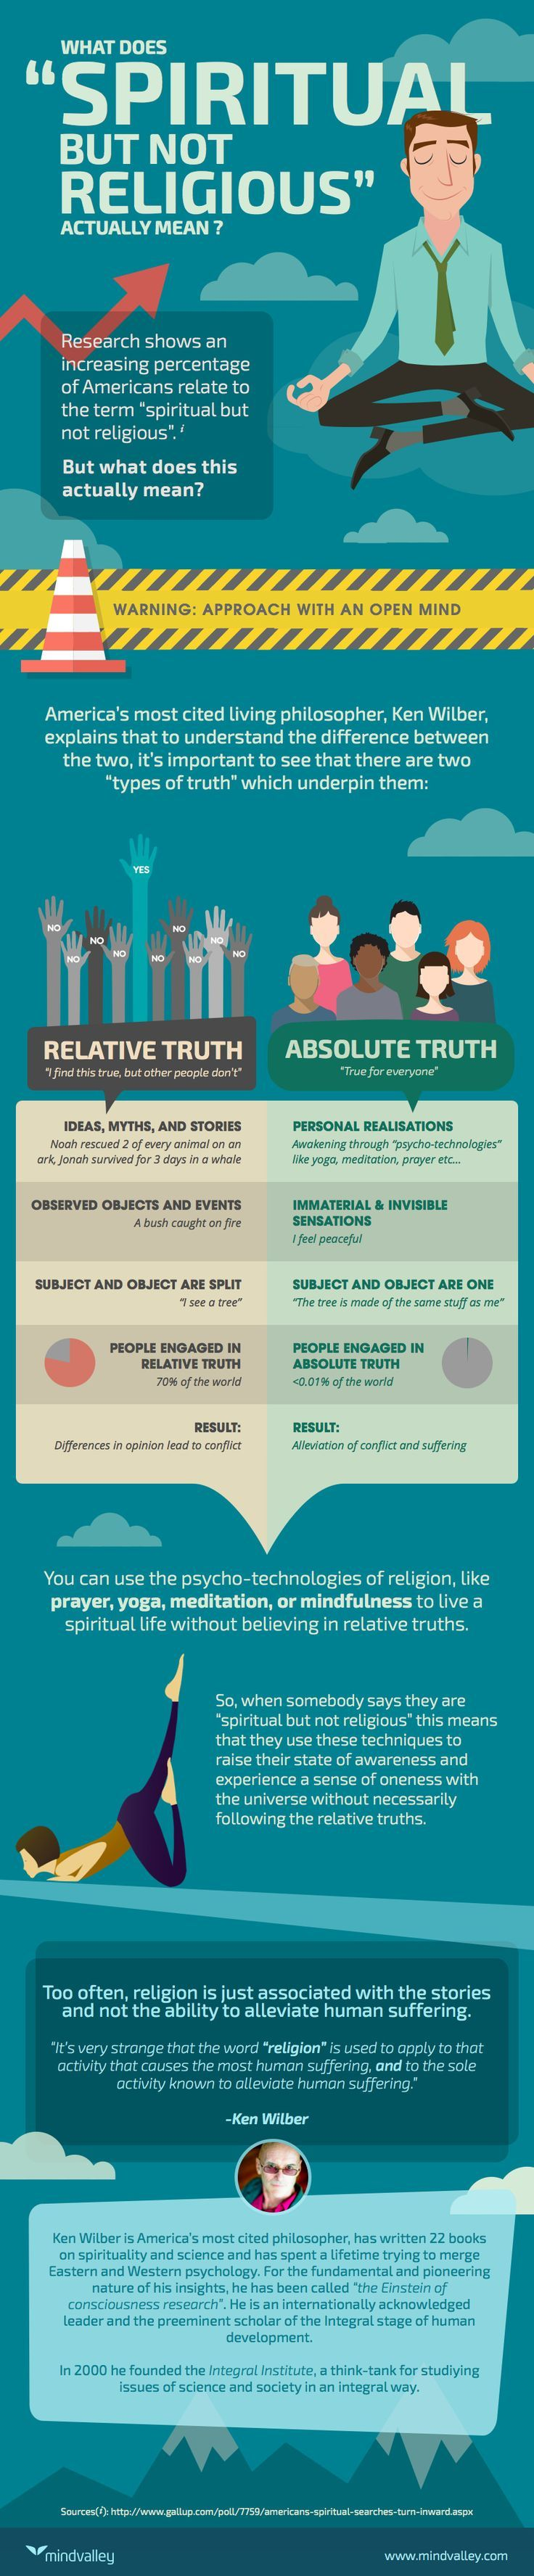 What Does Spiritual But Not Religious Actually Mean? | Mindvalley Academy